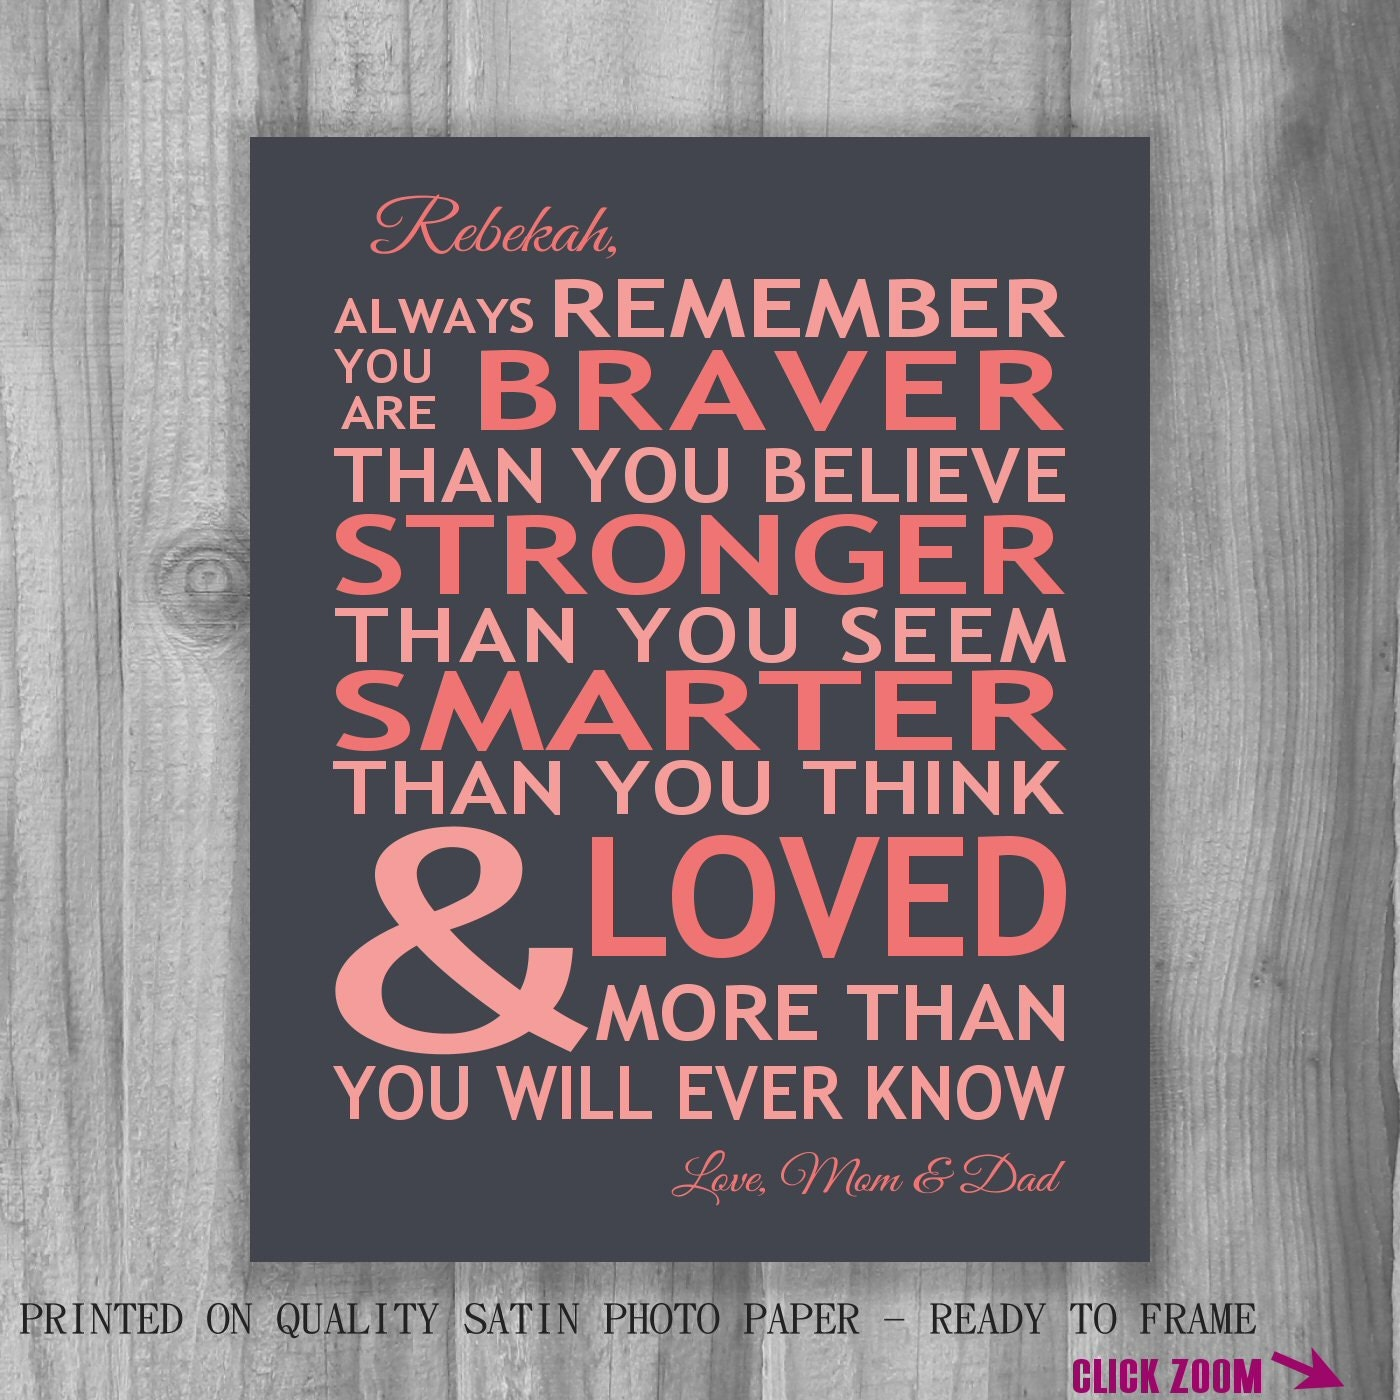 You Are Loved Quotes: Personalized Always Remember You Are Braver You Are Loved